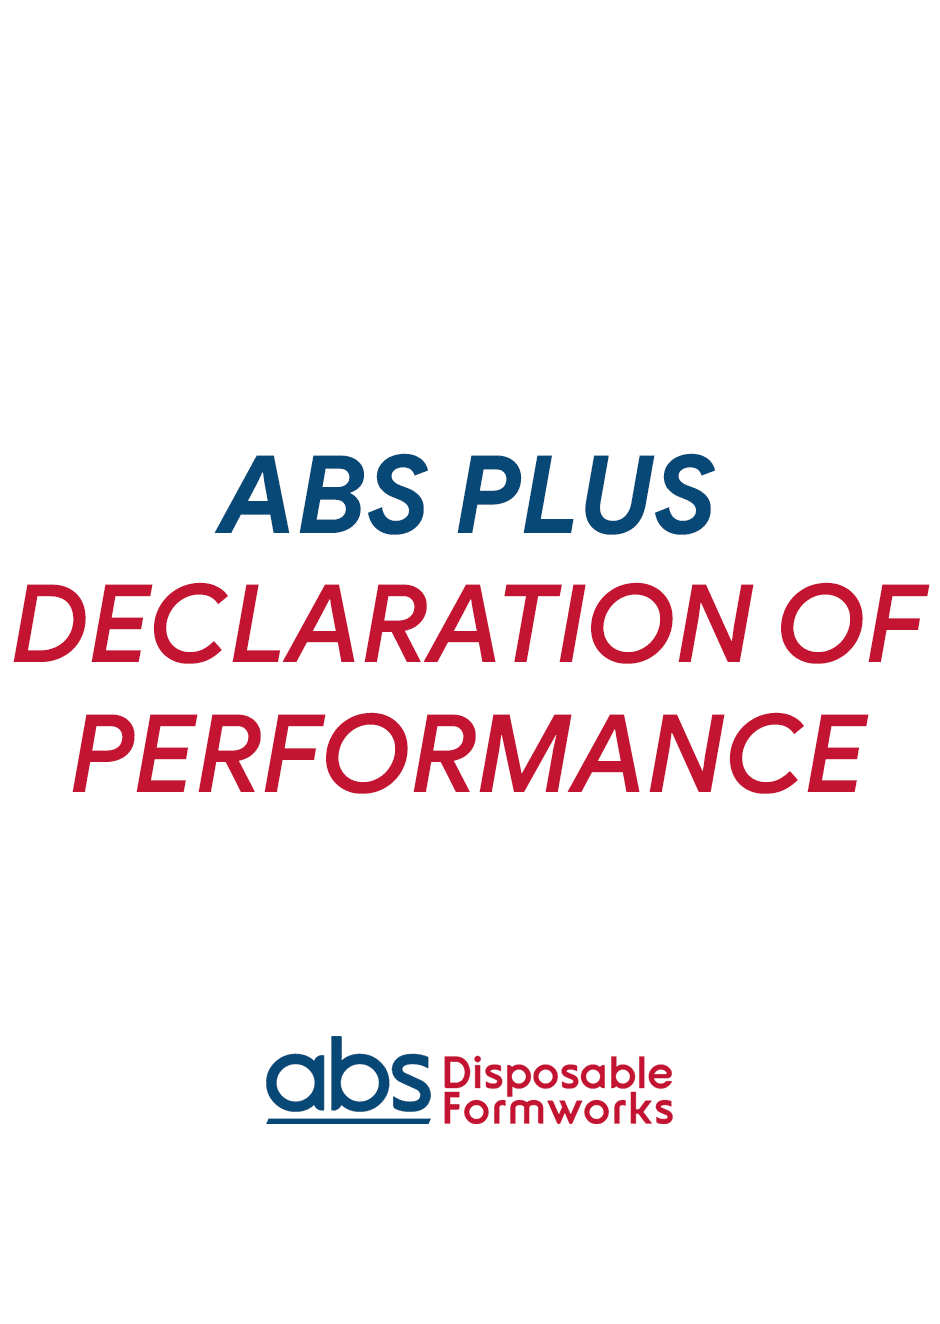 ABS_PLUS_DECLARATION_OF_PERFORMANCE